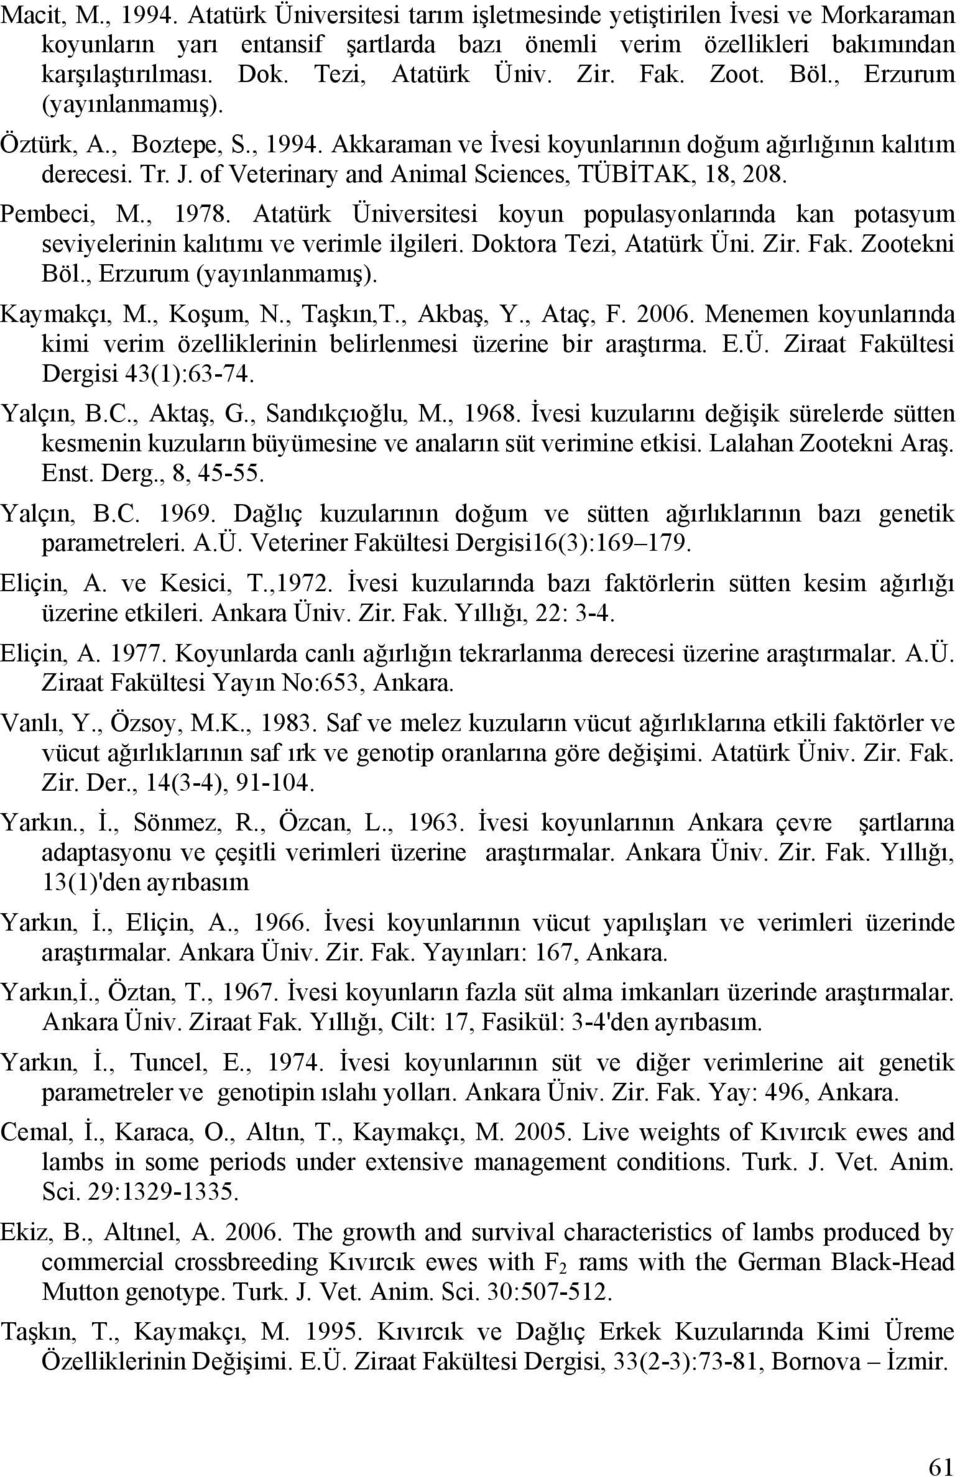 of Veterinary and Animal Sciences, TÜBİTAK, 18, 208. Pembeci, M., 1978. Atatürk Üniversitesi koyun populasyonlarında kan potasyum seviyelerinin kalıtımı ve verimle ilgileri. Doktora Tezi, Atatürk Üni.